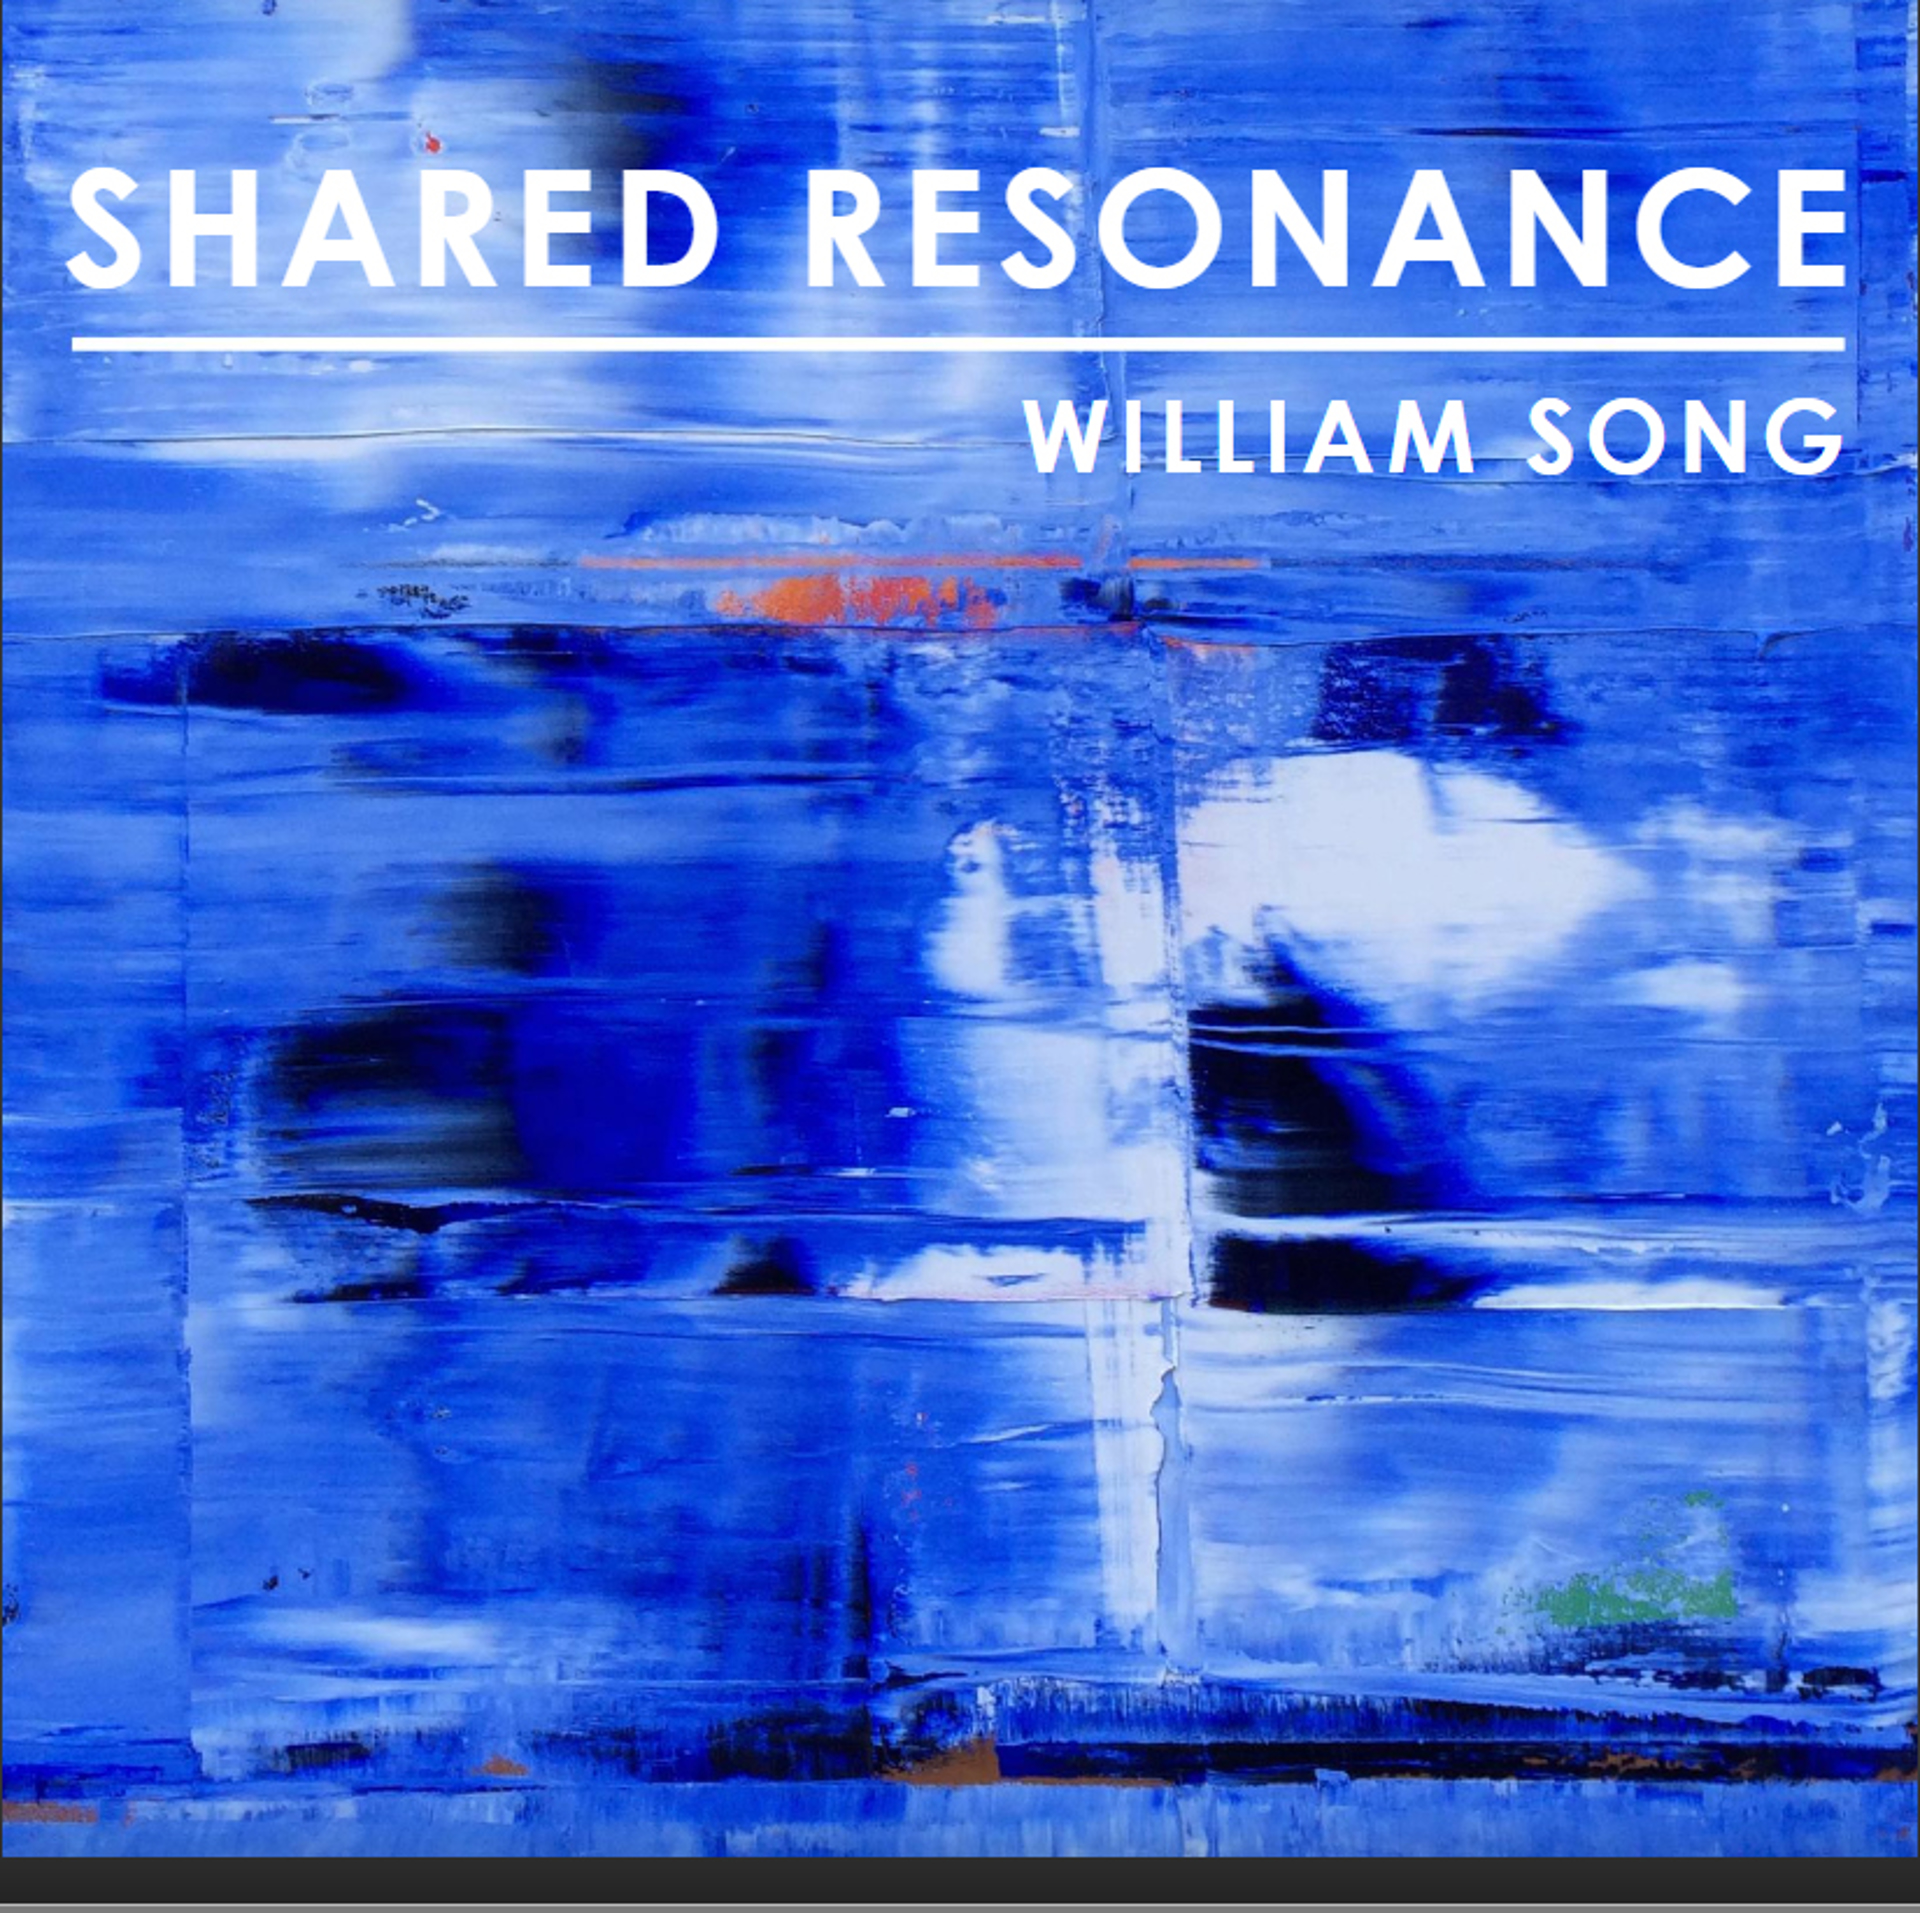 Shared Resonance | exhibition catalog by William Song